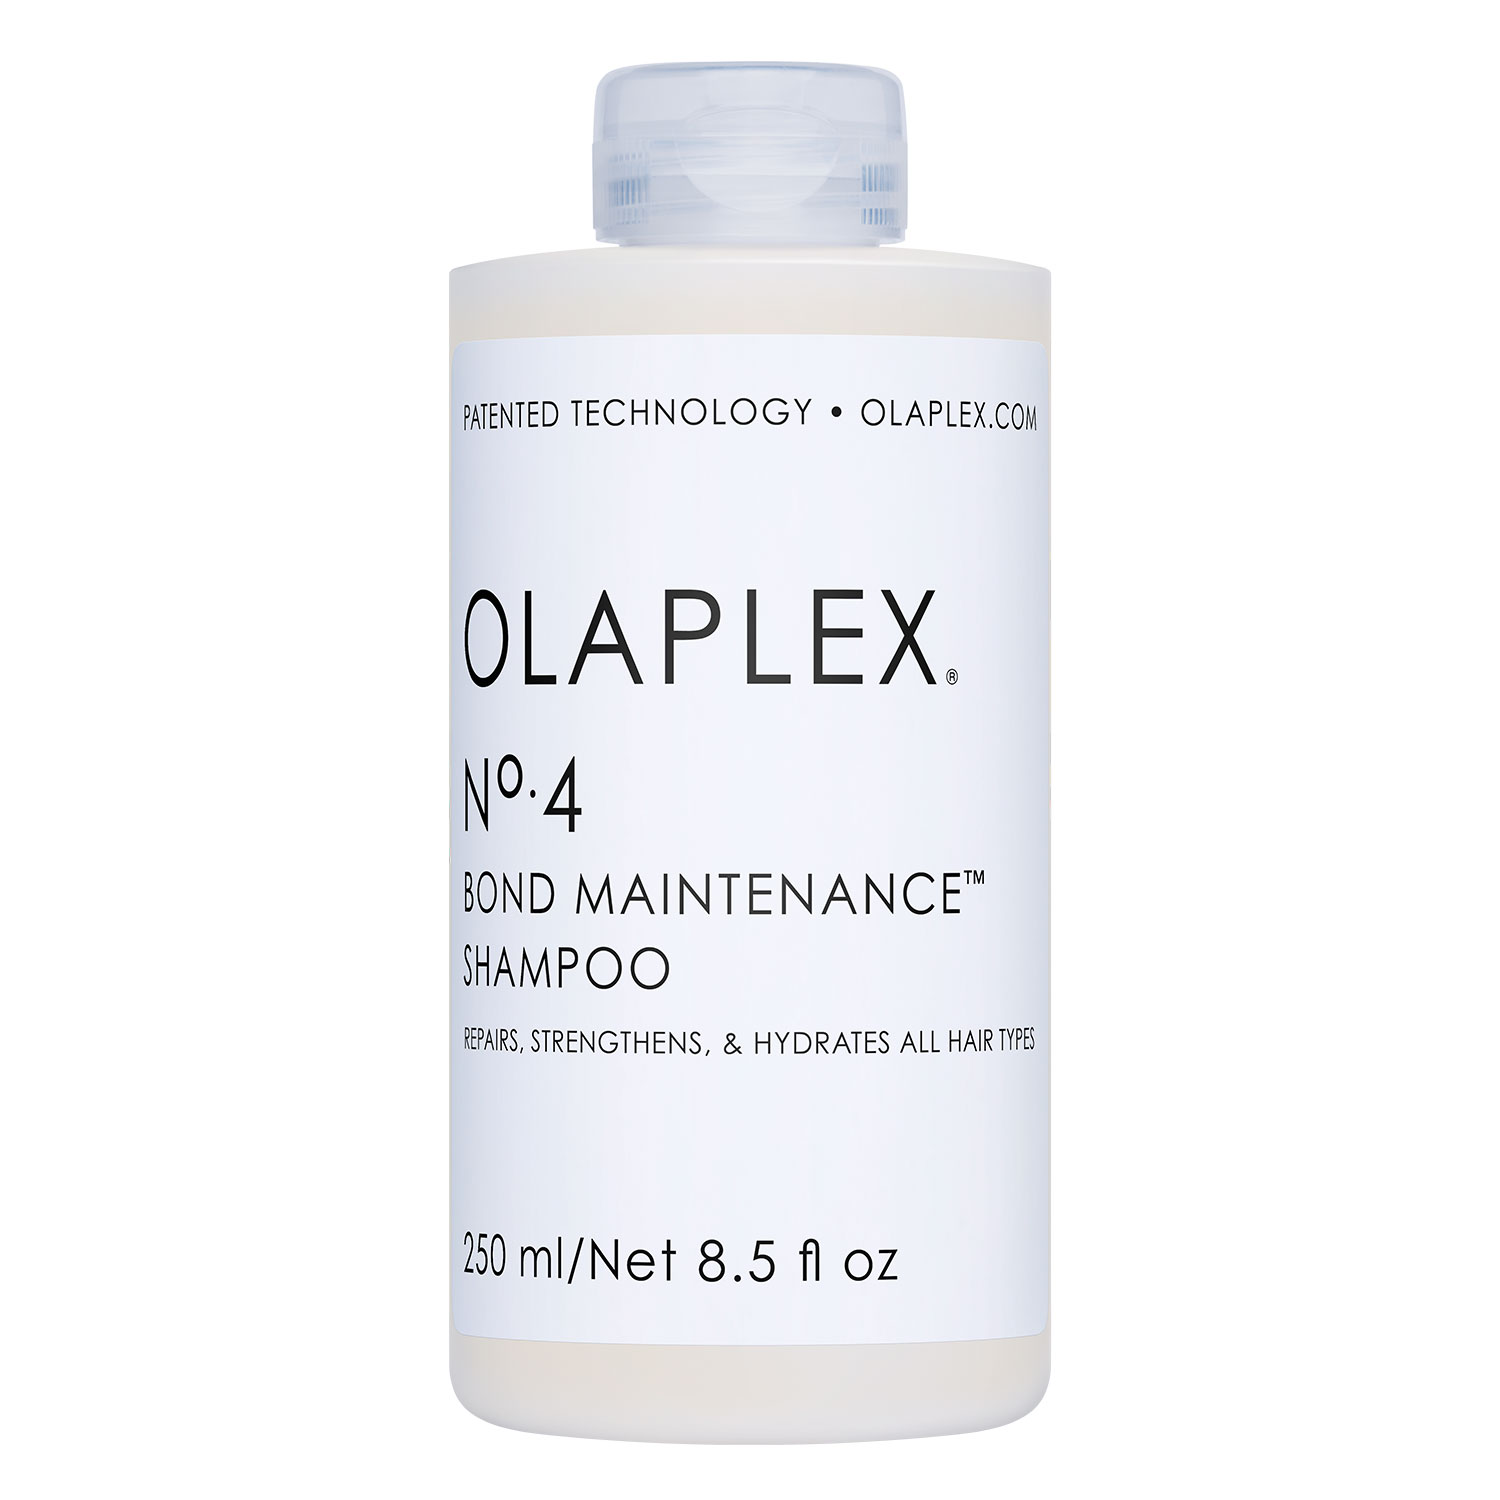 Olaplex - Bond Maintenance Shampoo No. 4